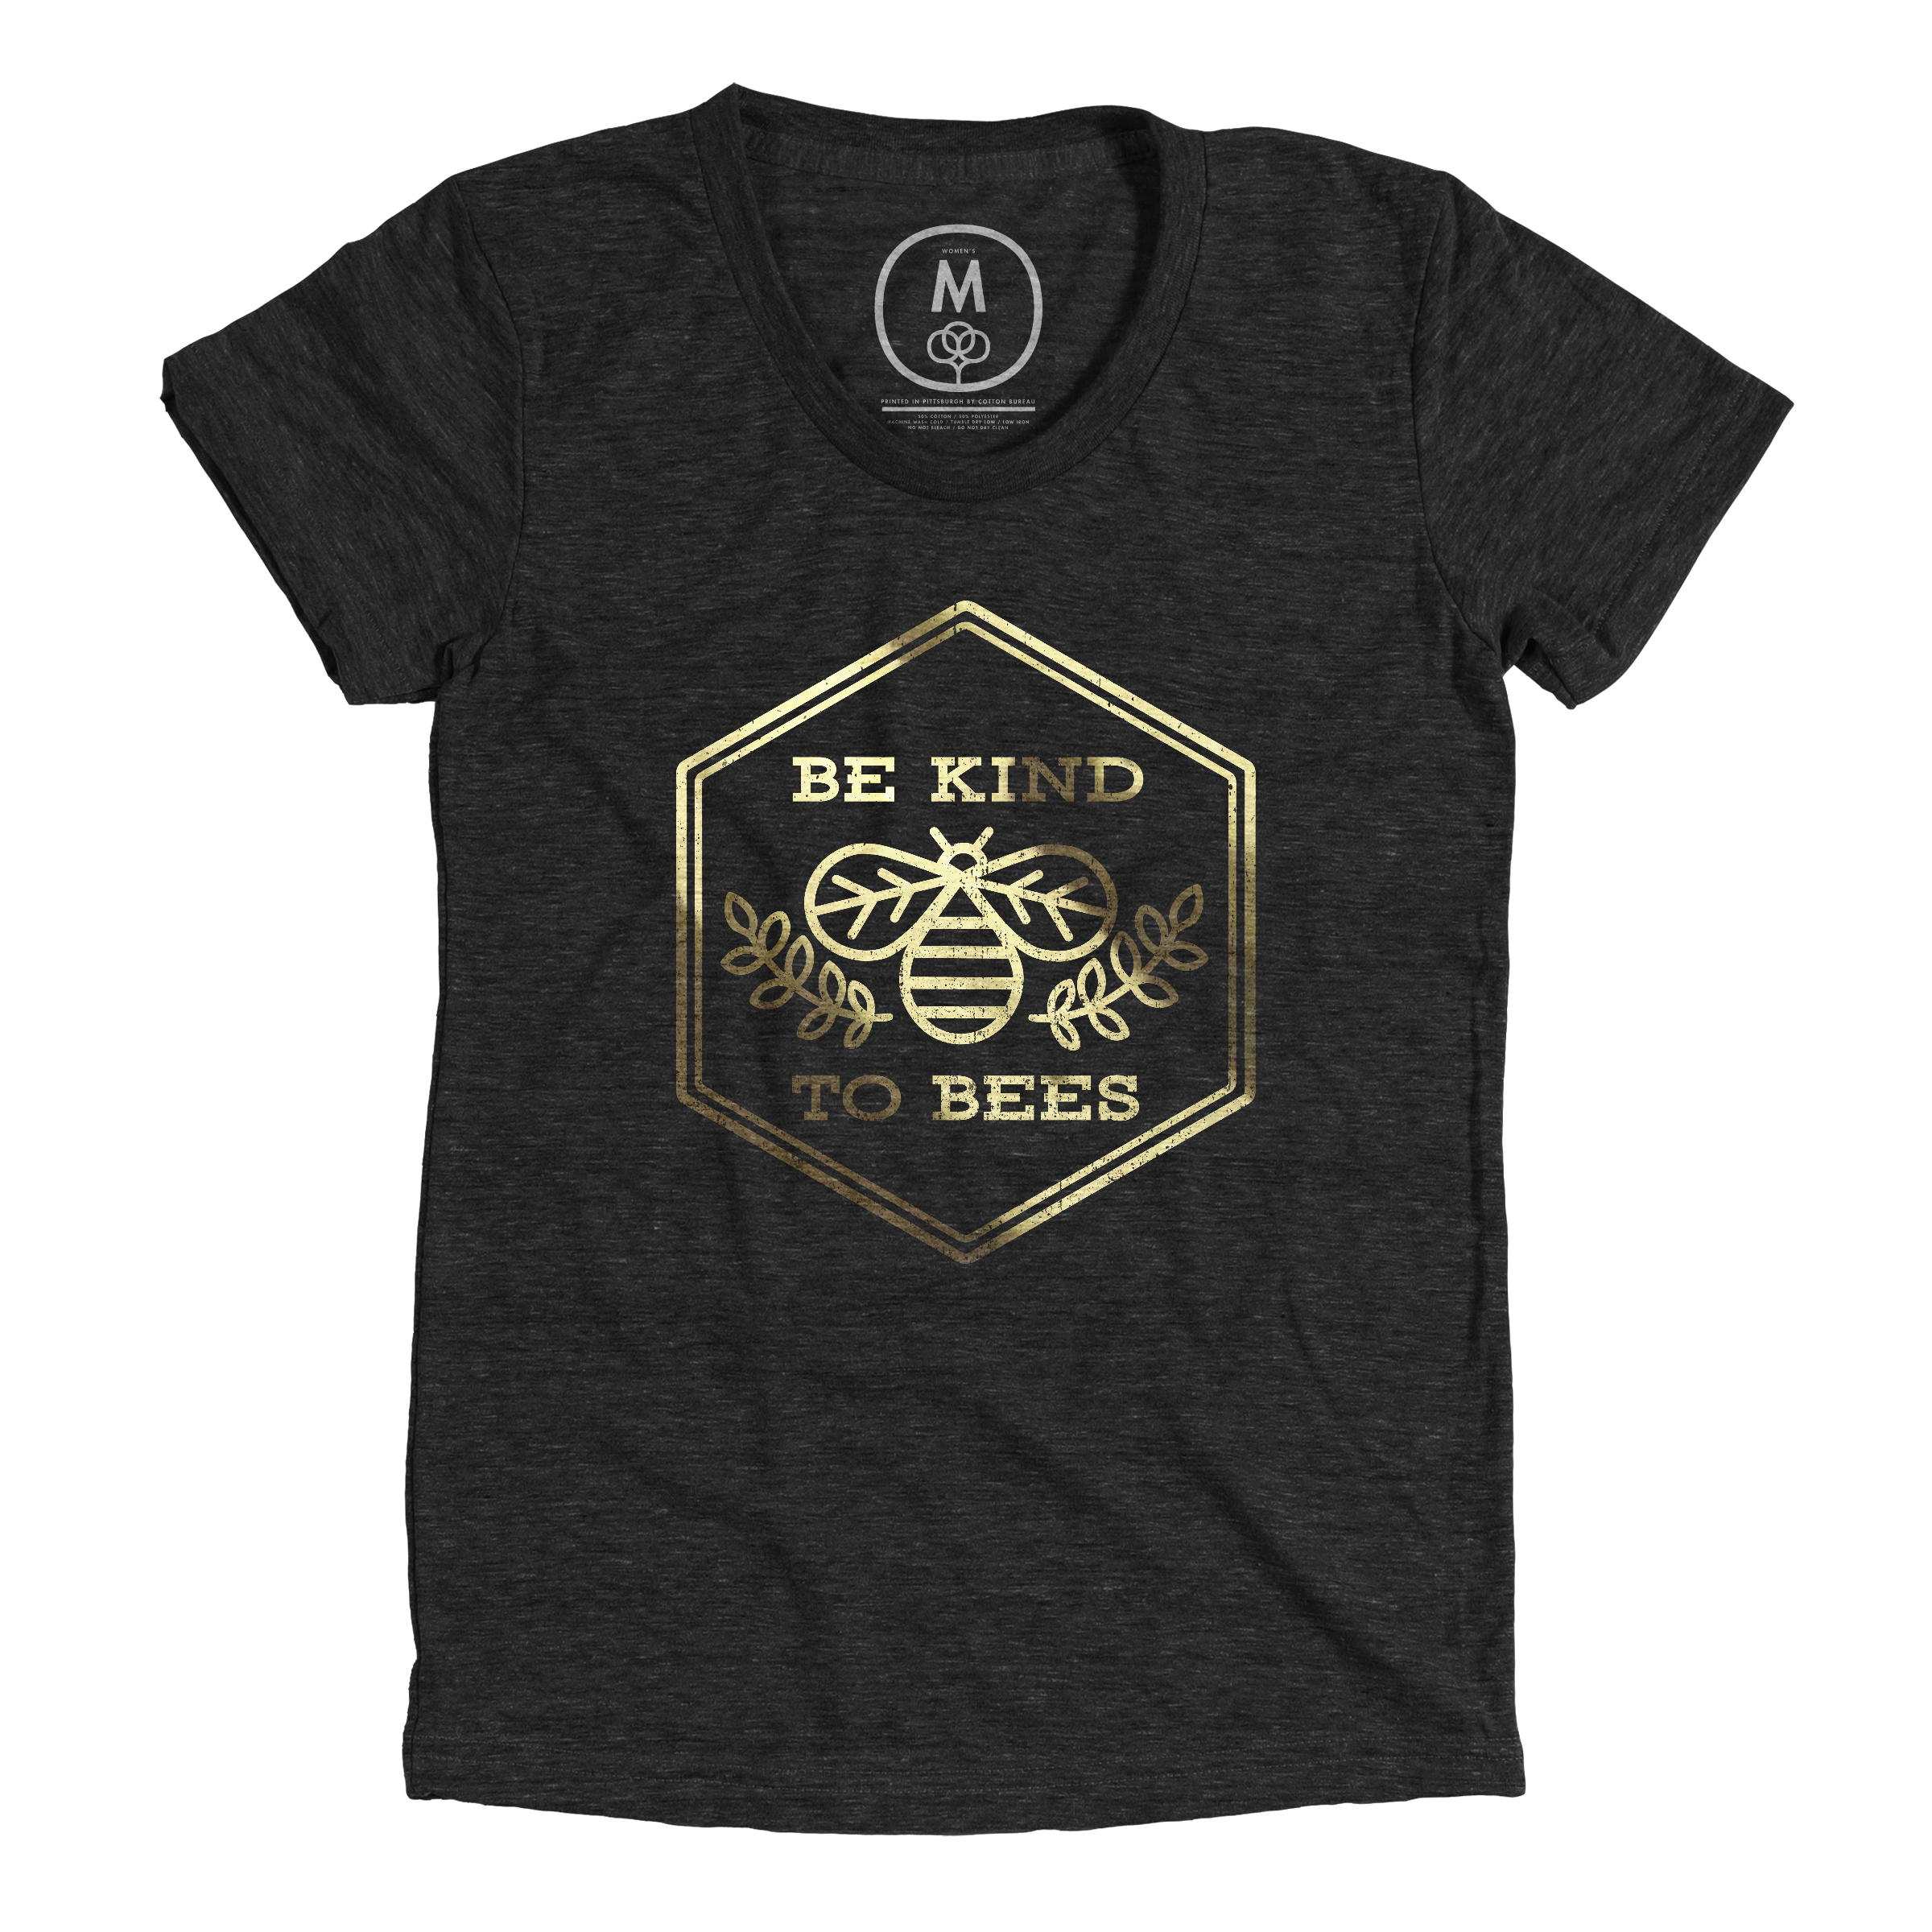 Be Kind to Bees Vintage Black (Women's)